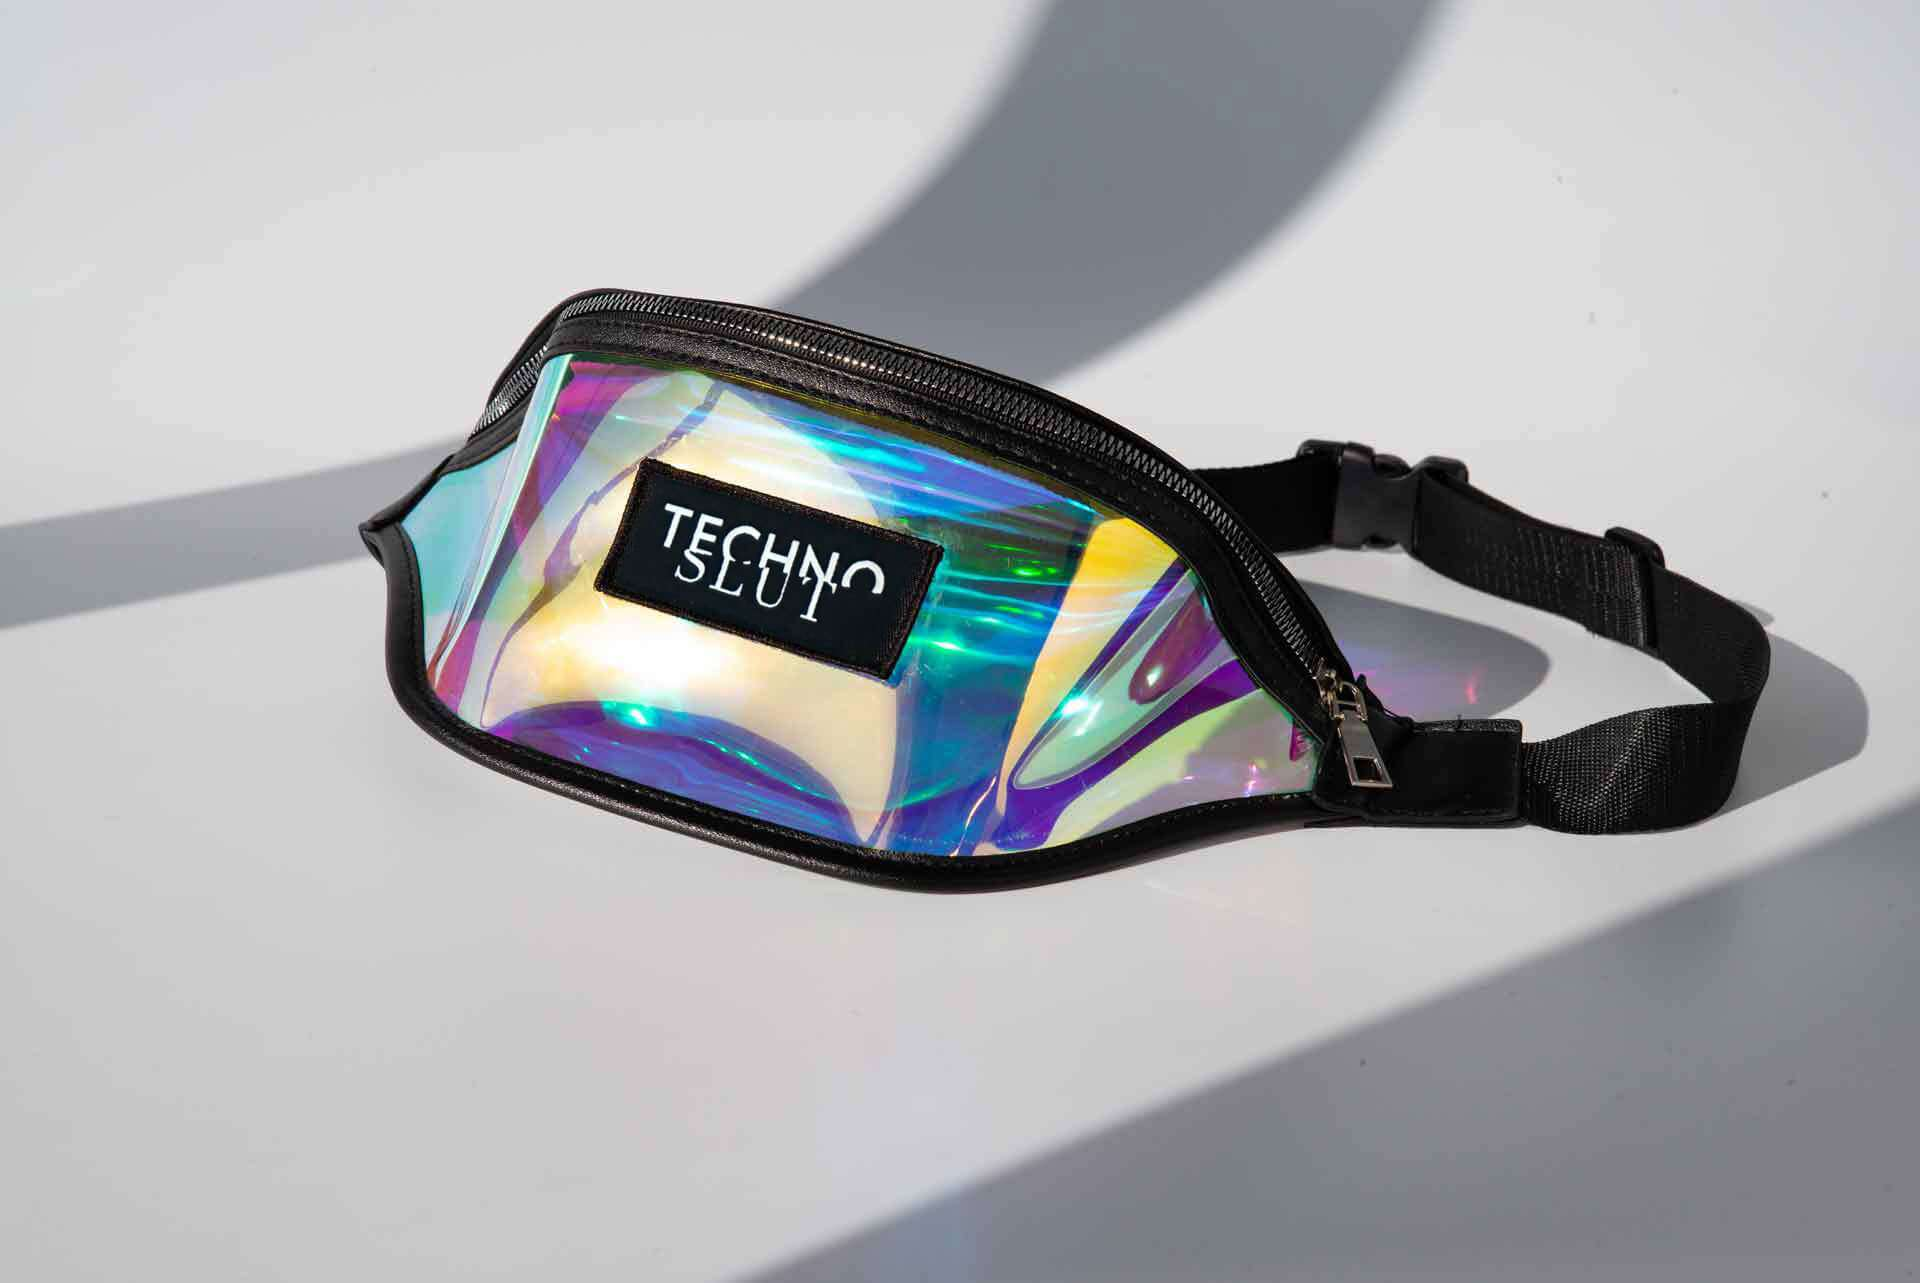 Laser Techno Slut Waist Bag